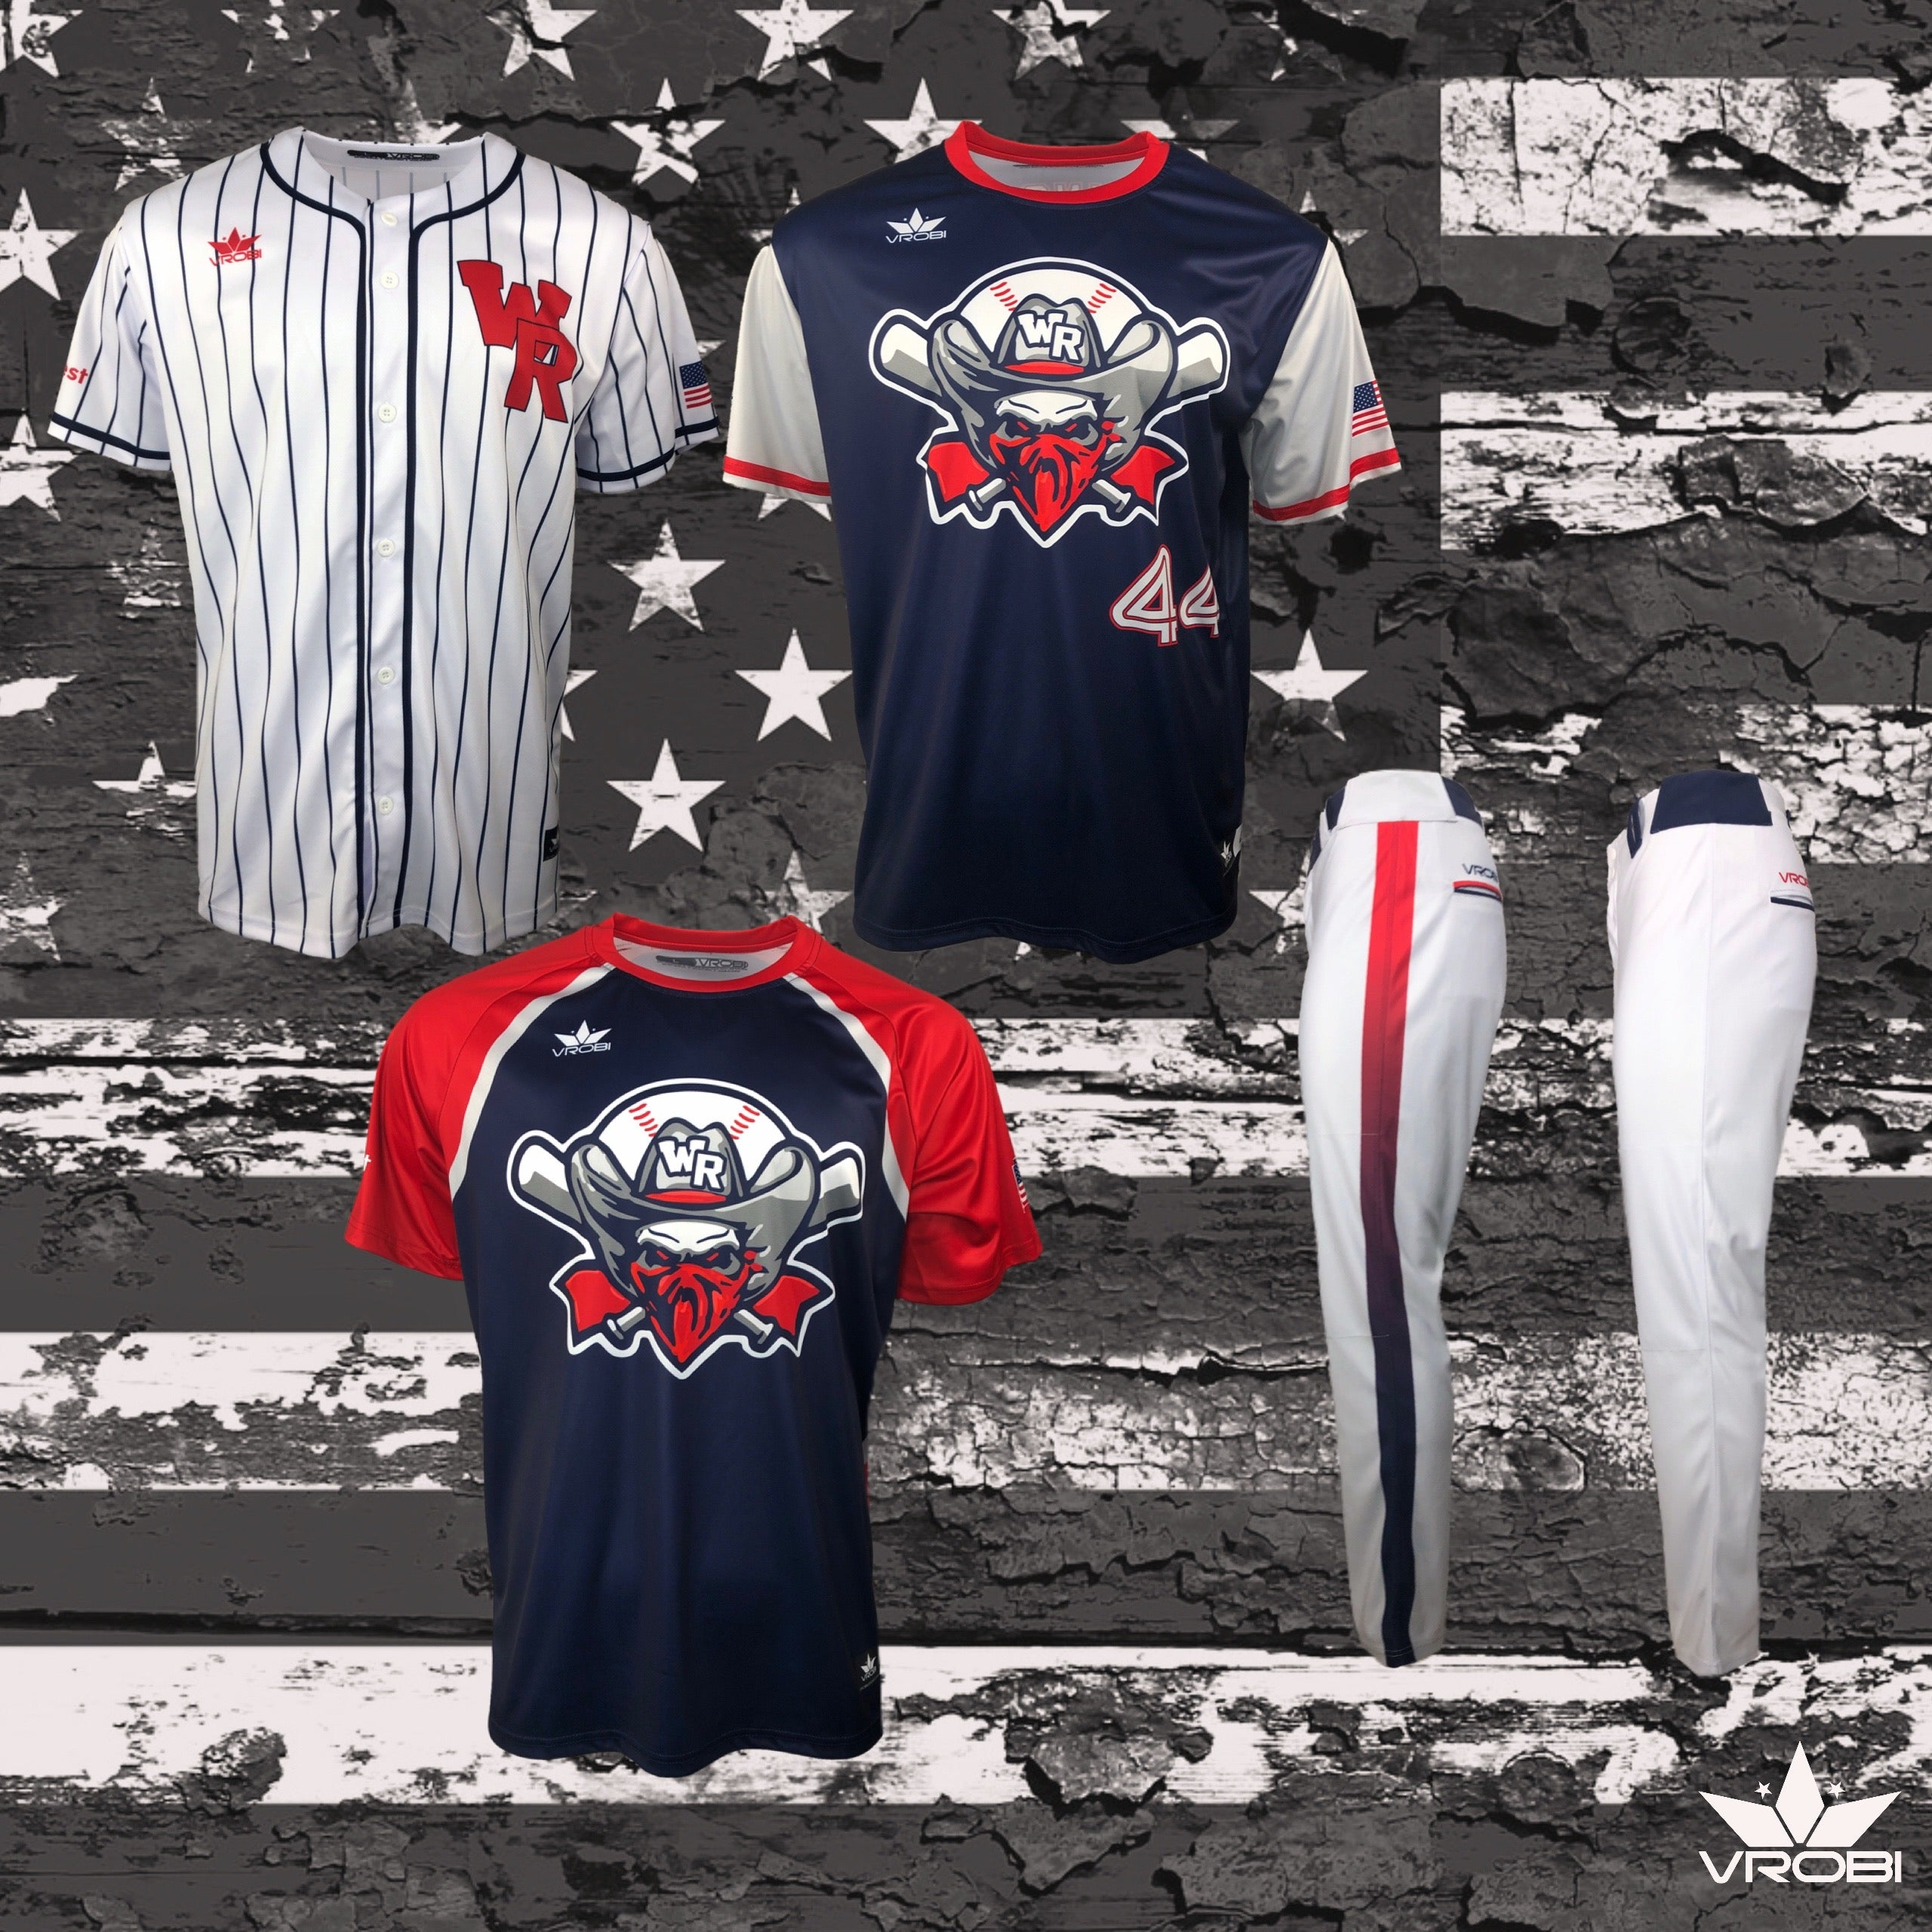 Silver Team Package for Men's Slowpitch Softball Teams showing full dye uniforms